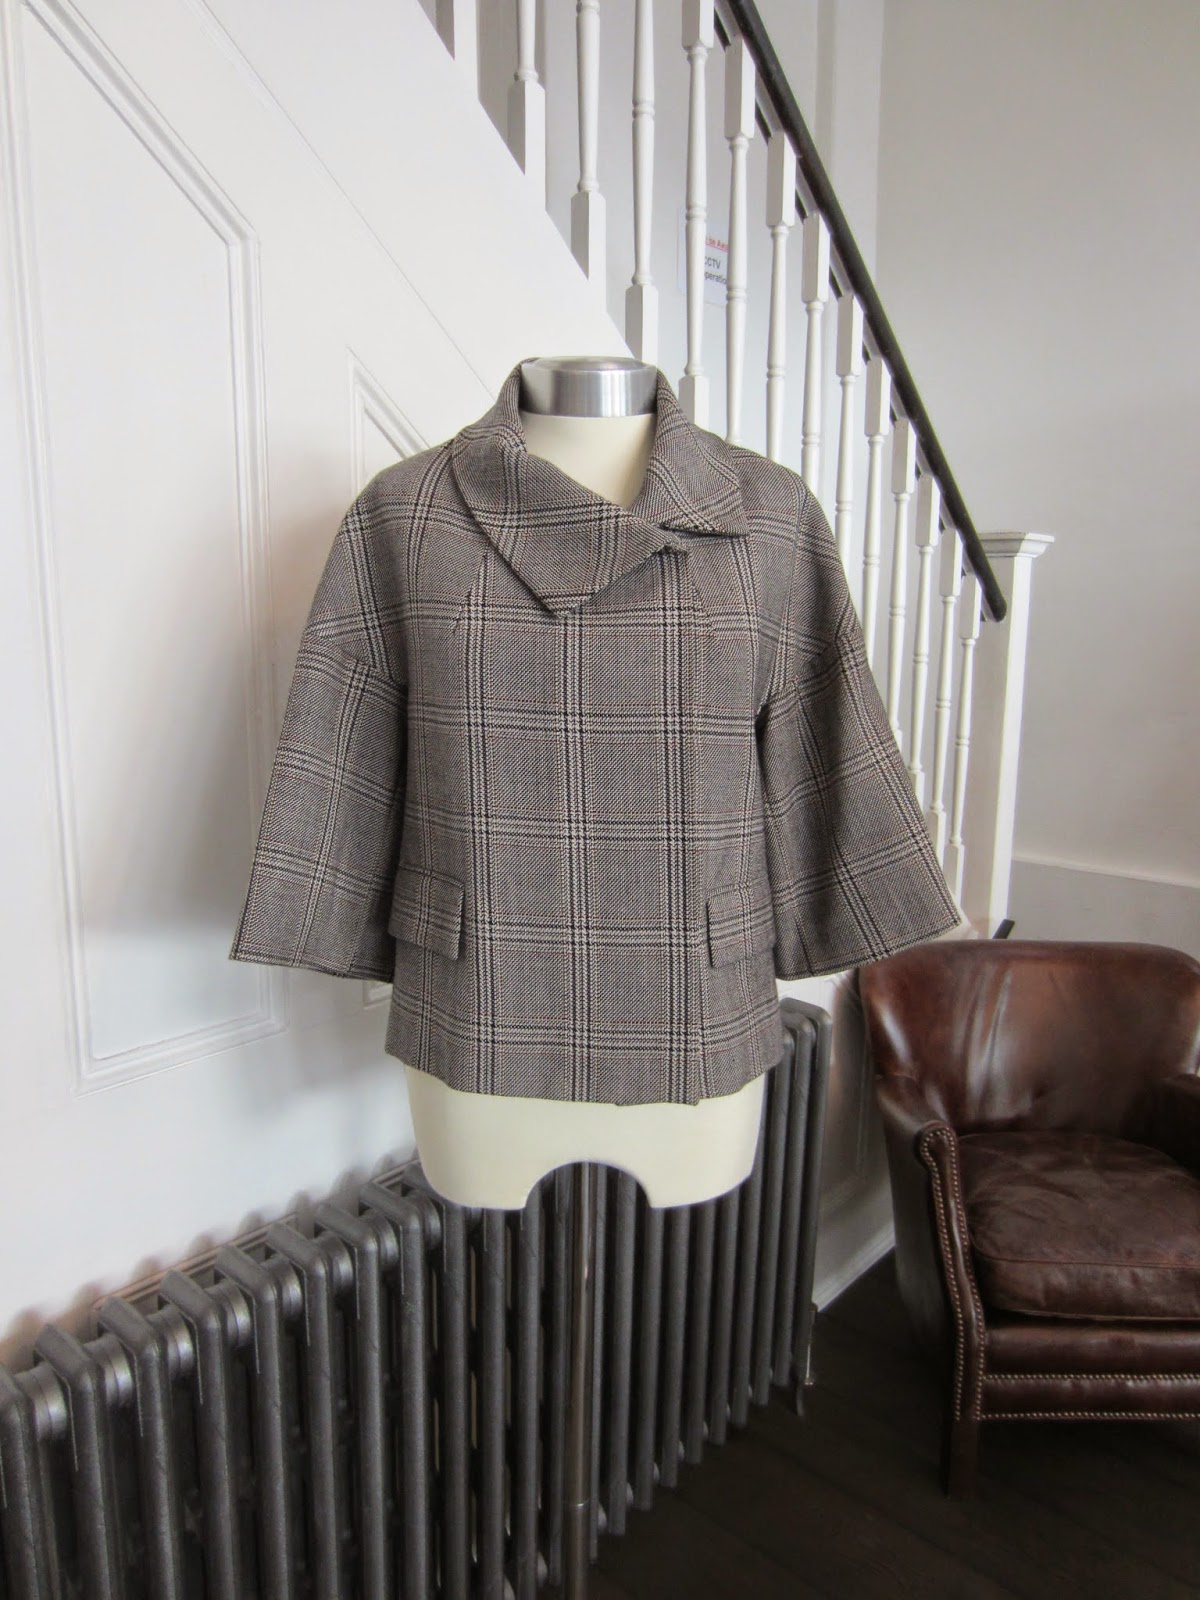 Farhi Black/Brown/White Checked Jacket